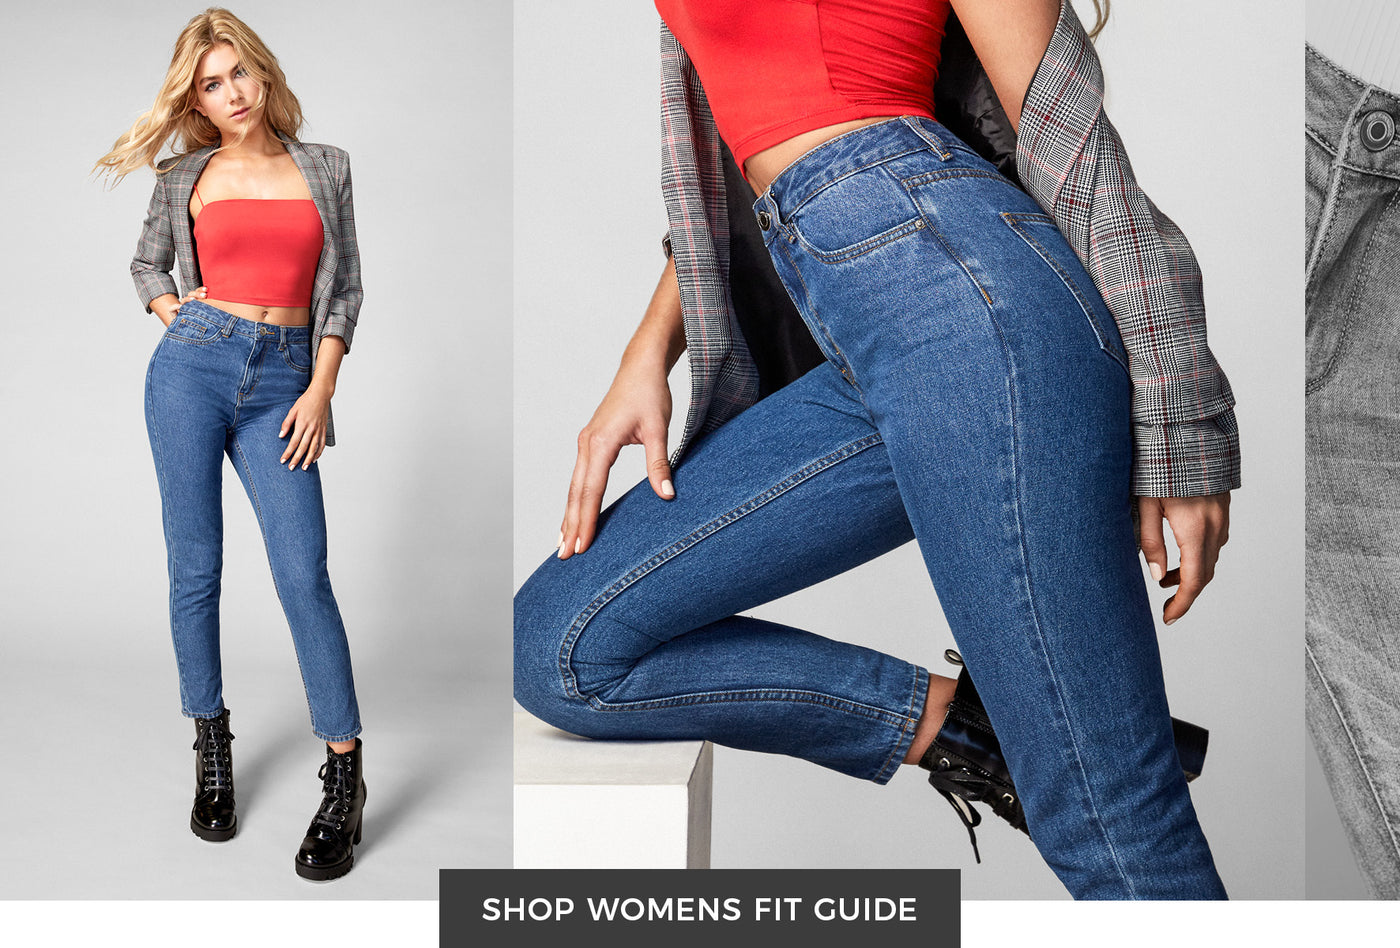 Shop Womens Fit Guide